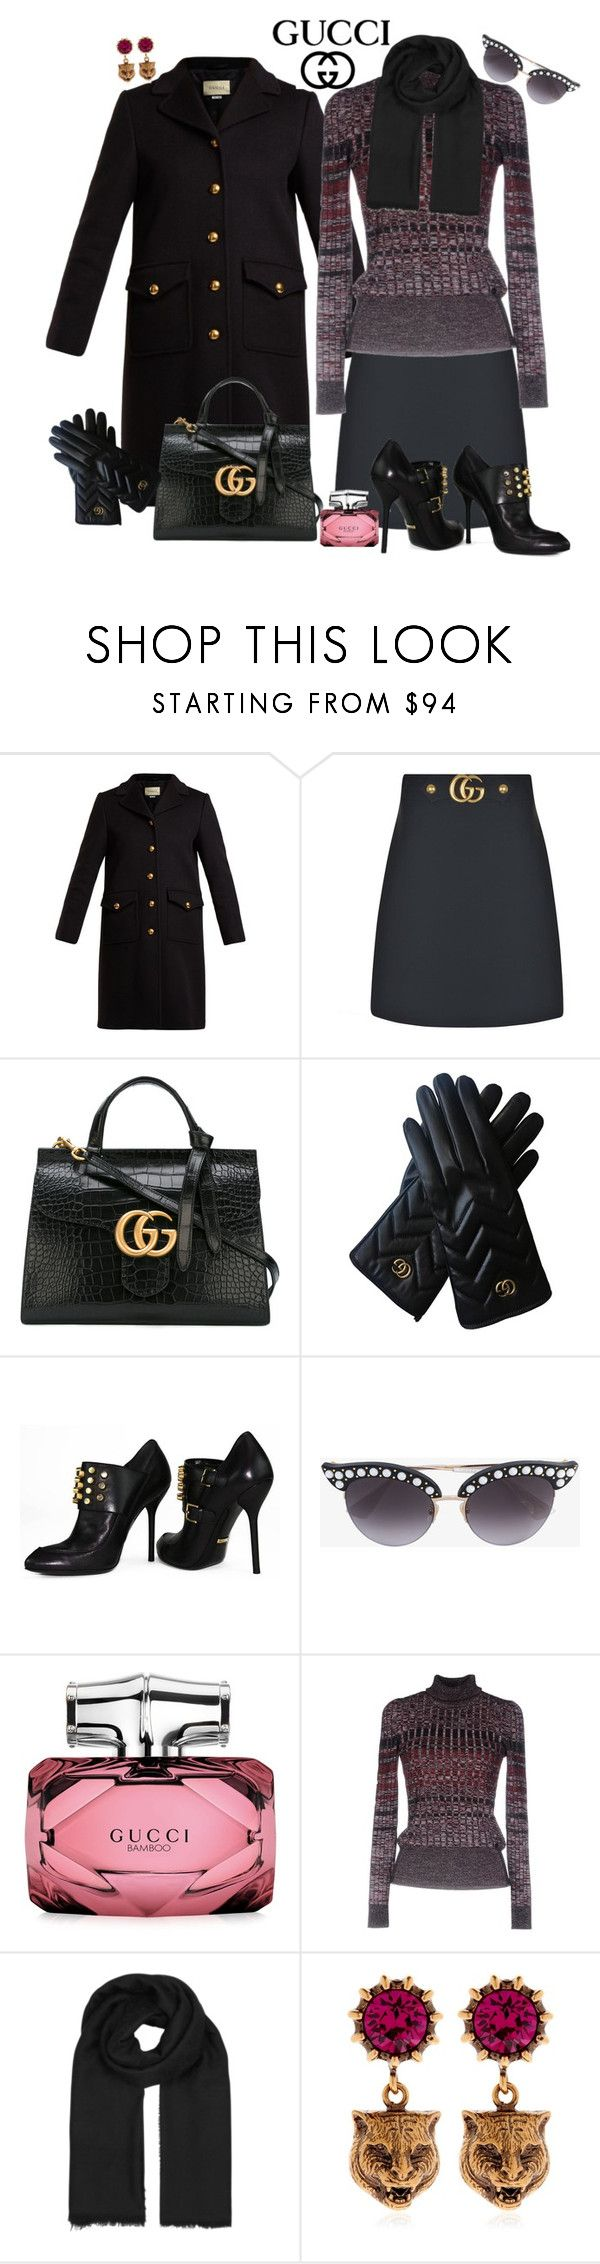 """Gucci Wool Skirt and Scarf"" by dobesht ❤ liked on Polyvore featuring Gucci and winterscarf"